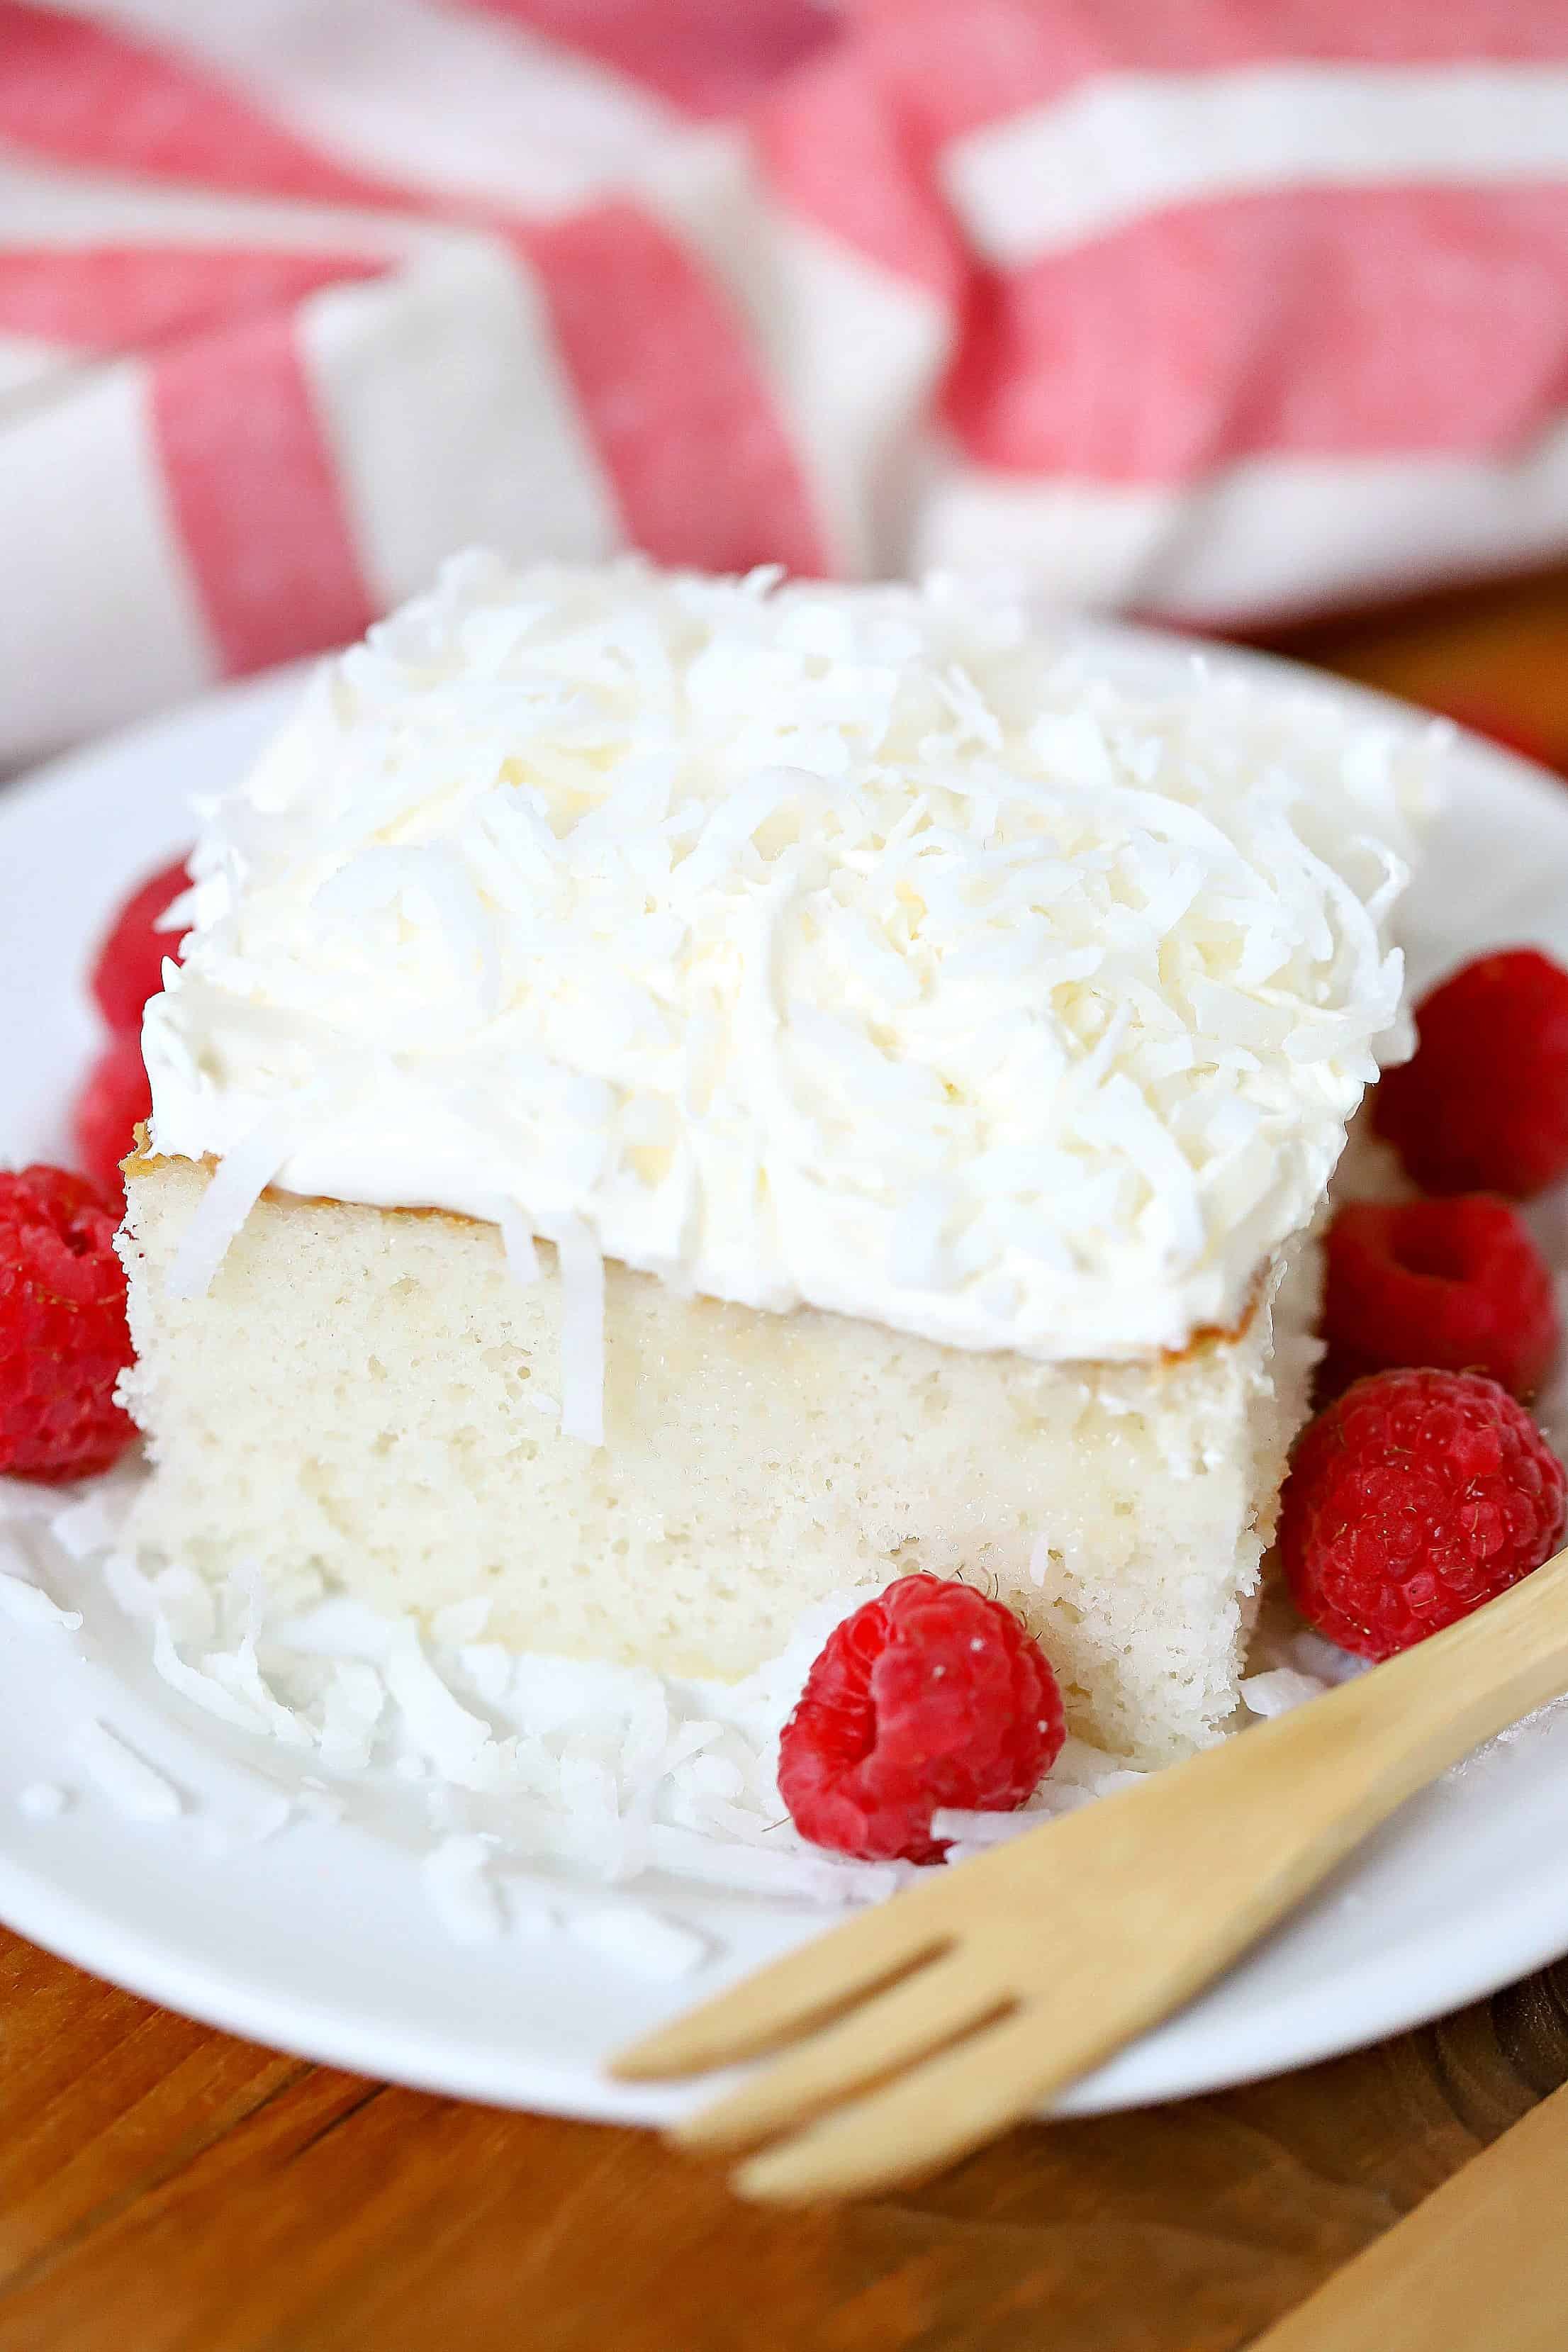 Piece of cake on a white plate with a side of raspberries and a fork.